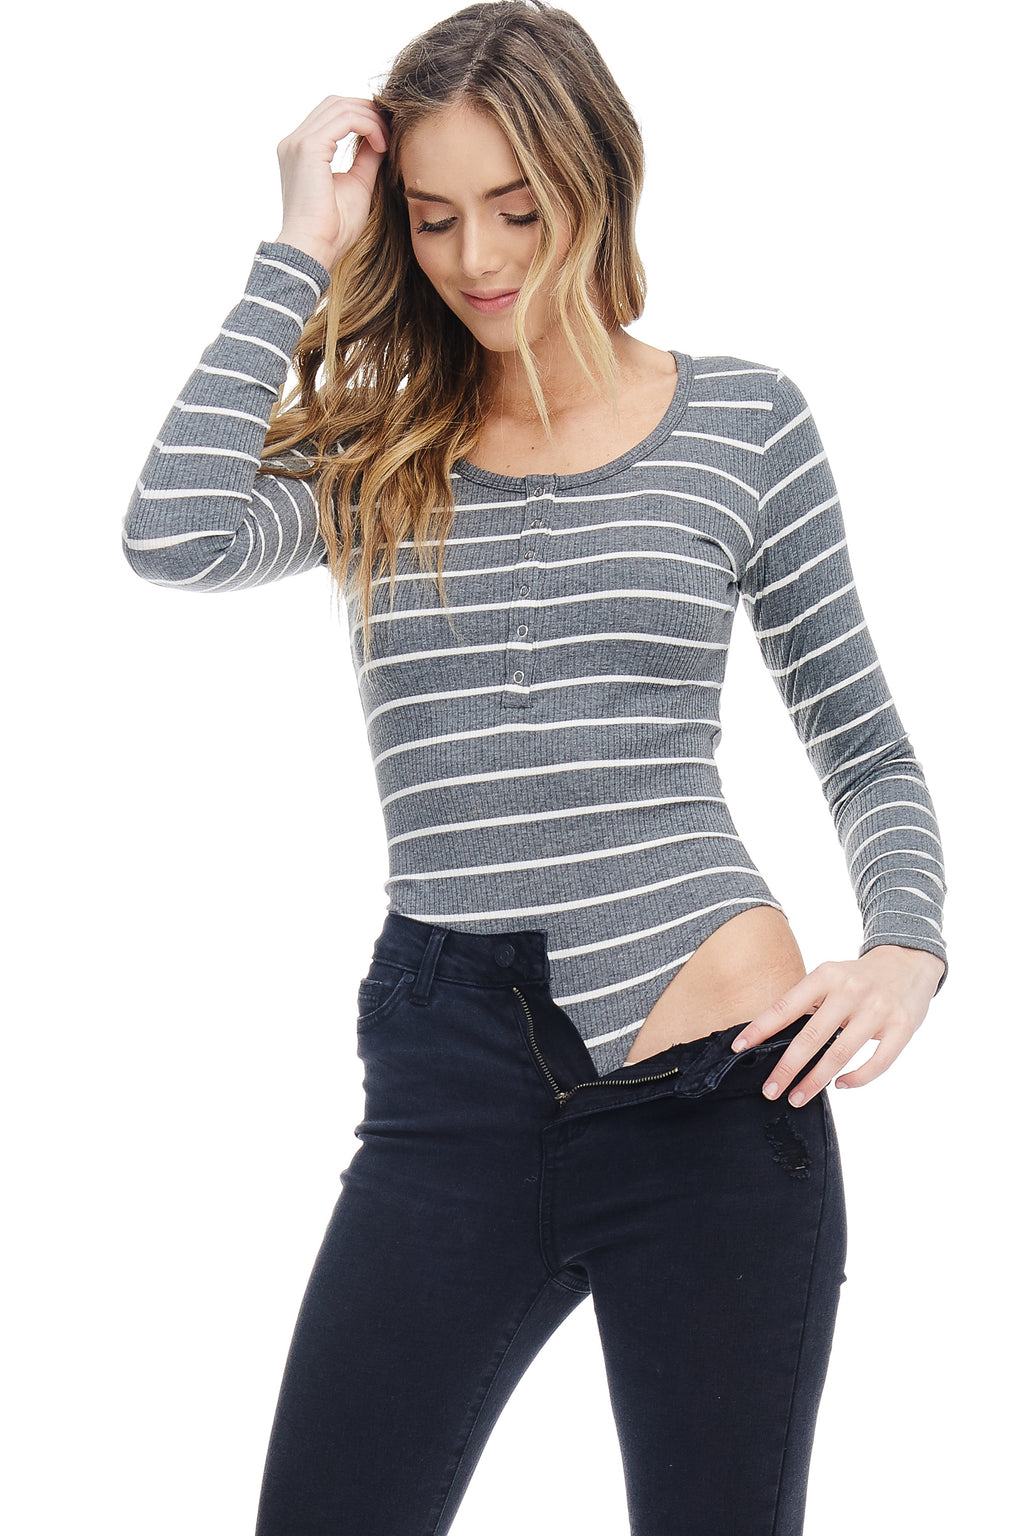 W18-041 Striped Long Sleeve Bodysuit